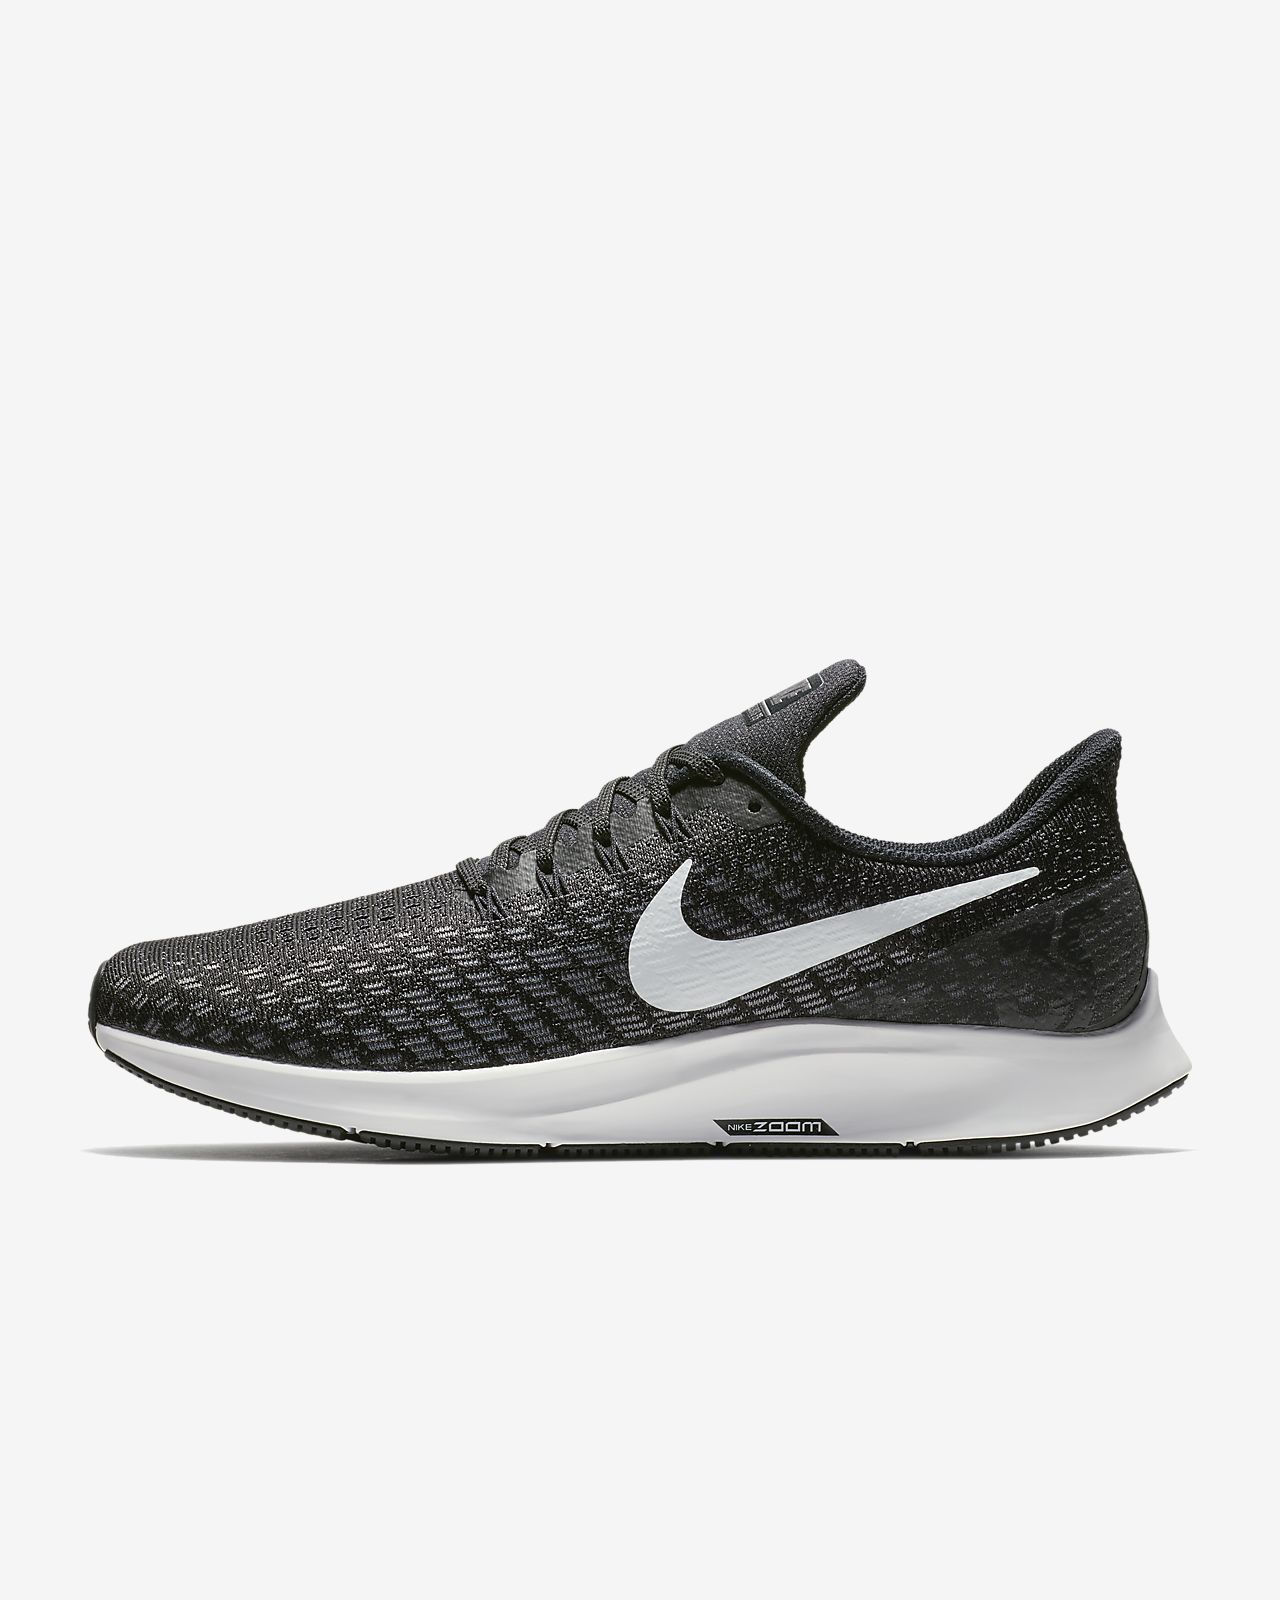 nike warehouse sales, Nike 859553 001 men's trail runnins